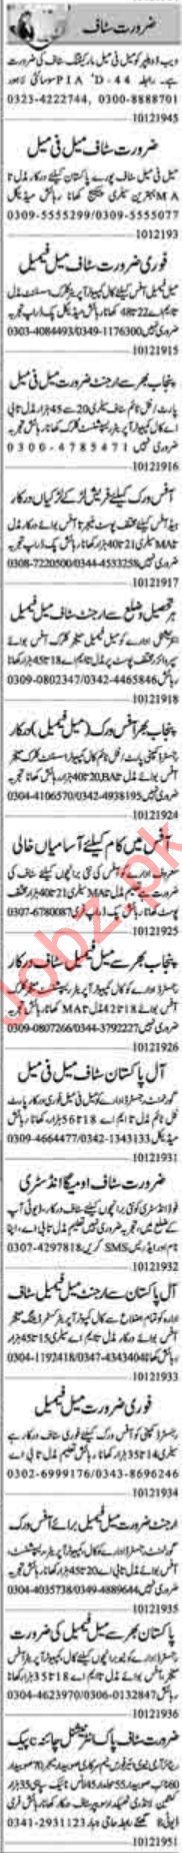 Daily Dunya Newspaper Classified Ads In Lahore